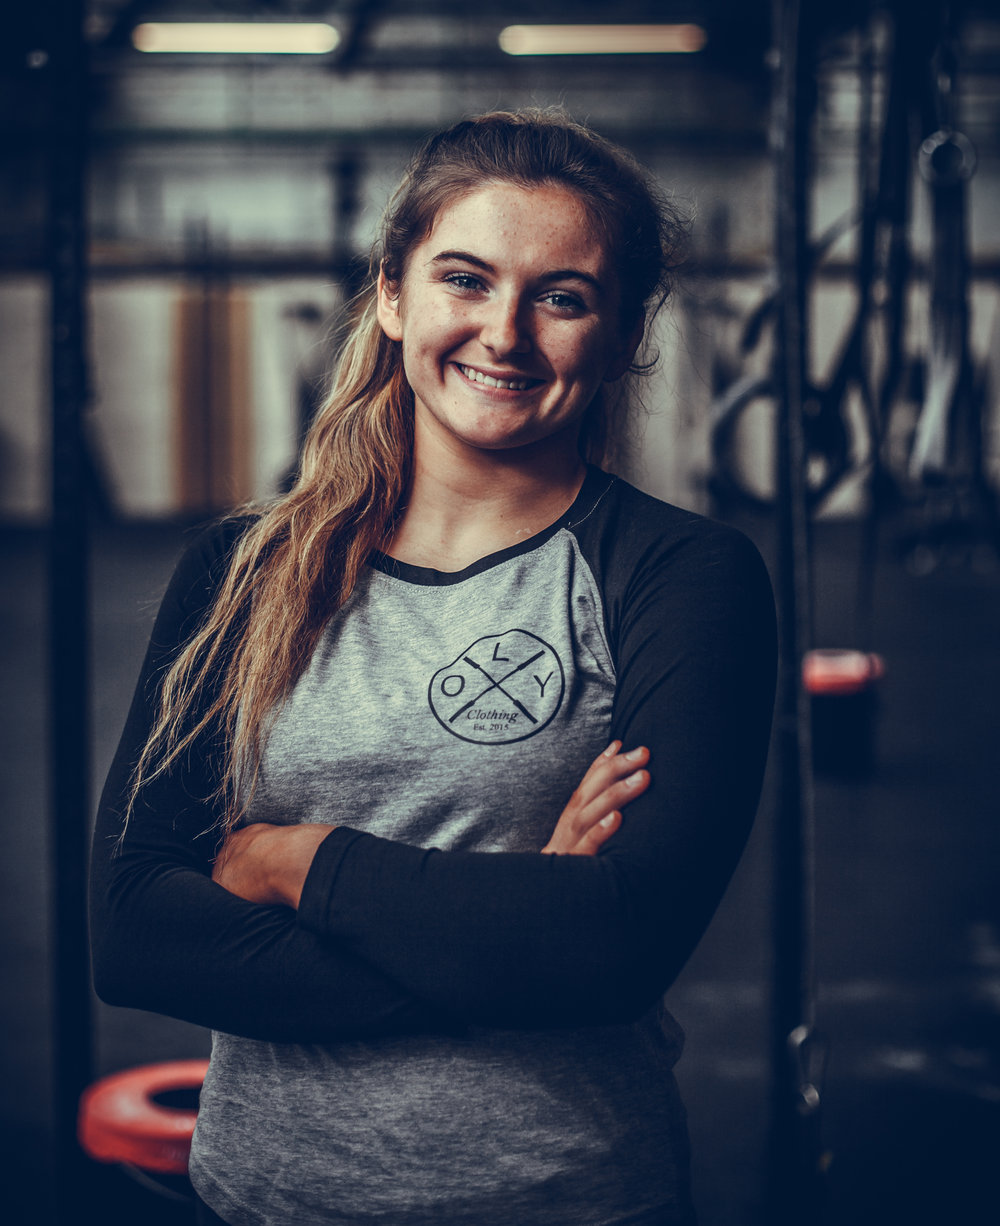 Zöe Kerr - Zoe has represented Ireland internationally in the sport of trampolining. After competing at the World Championships she decided to shift her focus to CrossFit in 2017.-In a year and a half Zoe has solidified herself as one of the best Female Teen athletes in the world. Having finished 35th worldwide, 1st in Central Europe and 1st the UK she narrowly missed going to the CrossFit Games in the 16/17 age category. Zoe has since qualified for the renowned WZA Competition in Miami where she hopes to bring home the goods.